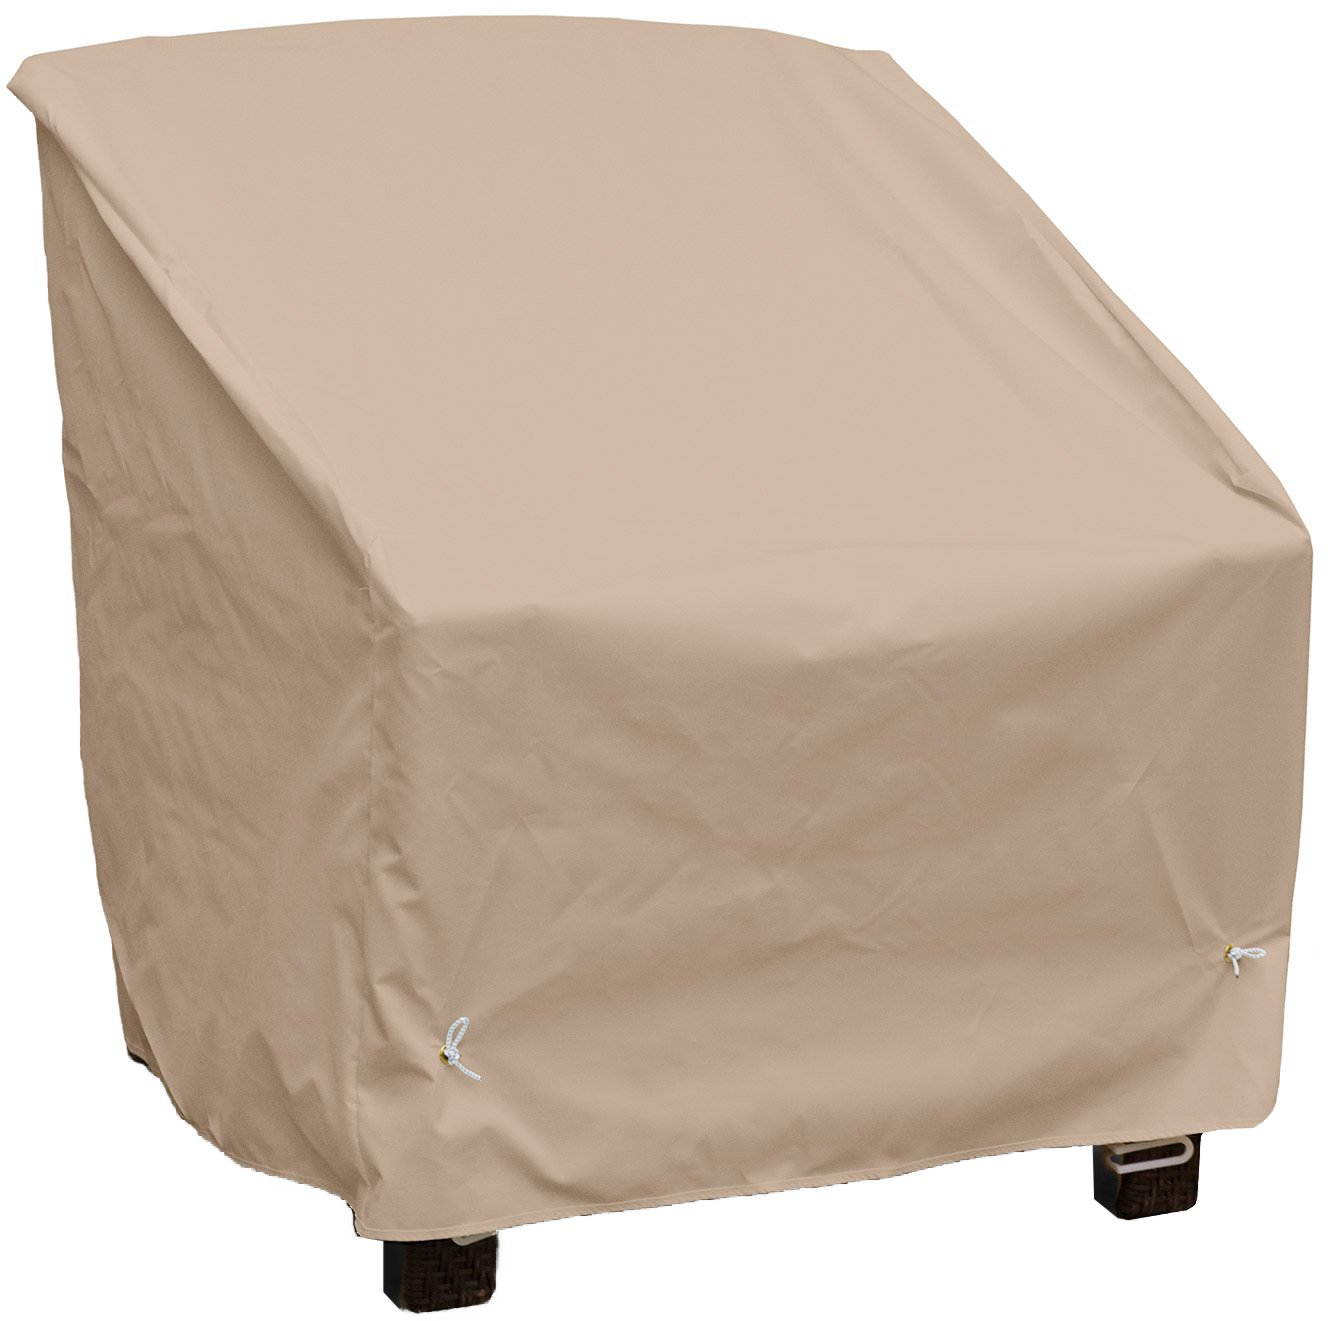 KoverRoos Weathermax 46250 Deep Seating High Back Chair Cover, 34-Inch Width by 35-Inch Diameter by 37-Inch Height, Toast